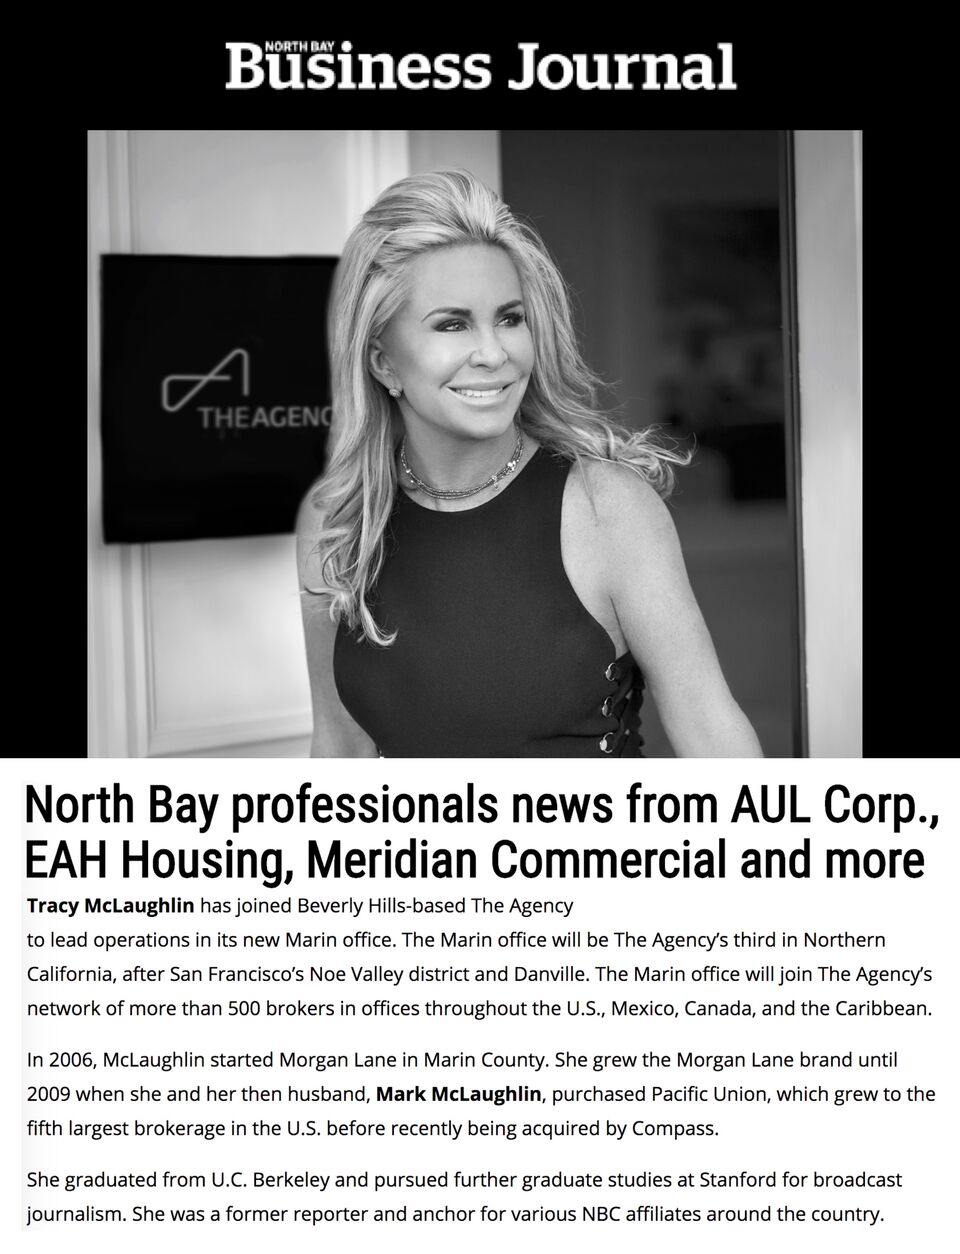 North Bay professionals news from AUL Corp., EAH Housing, Meridian Commercial and more